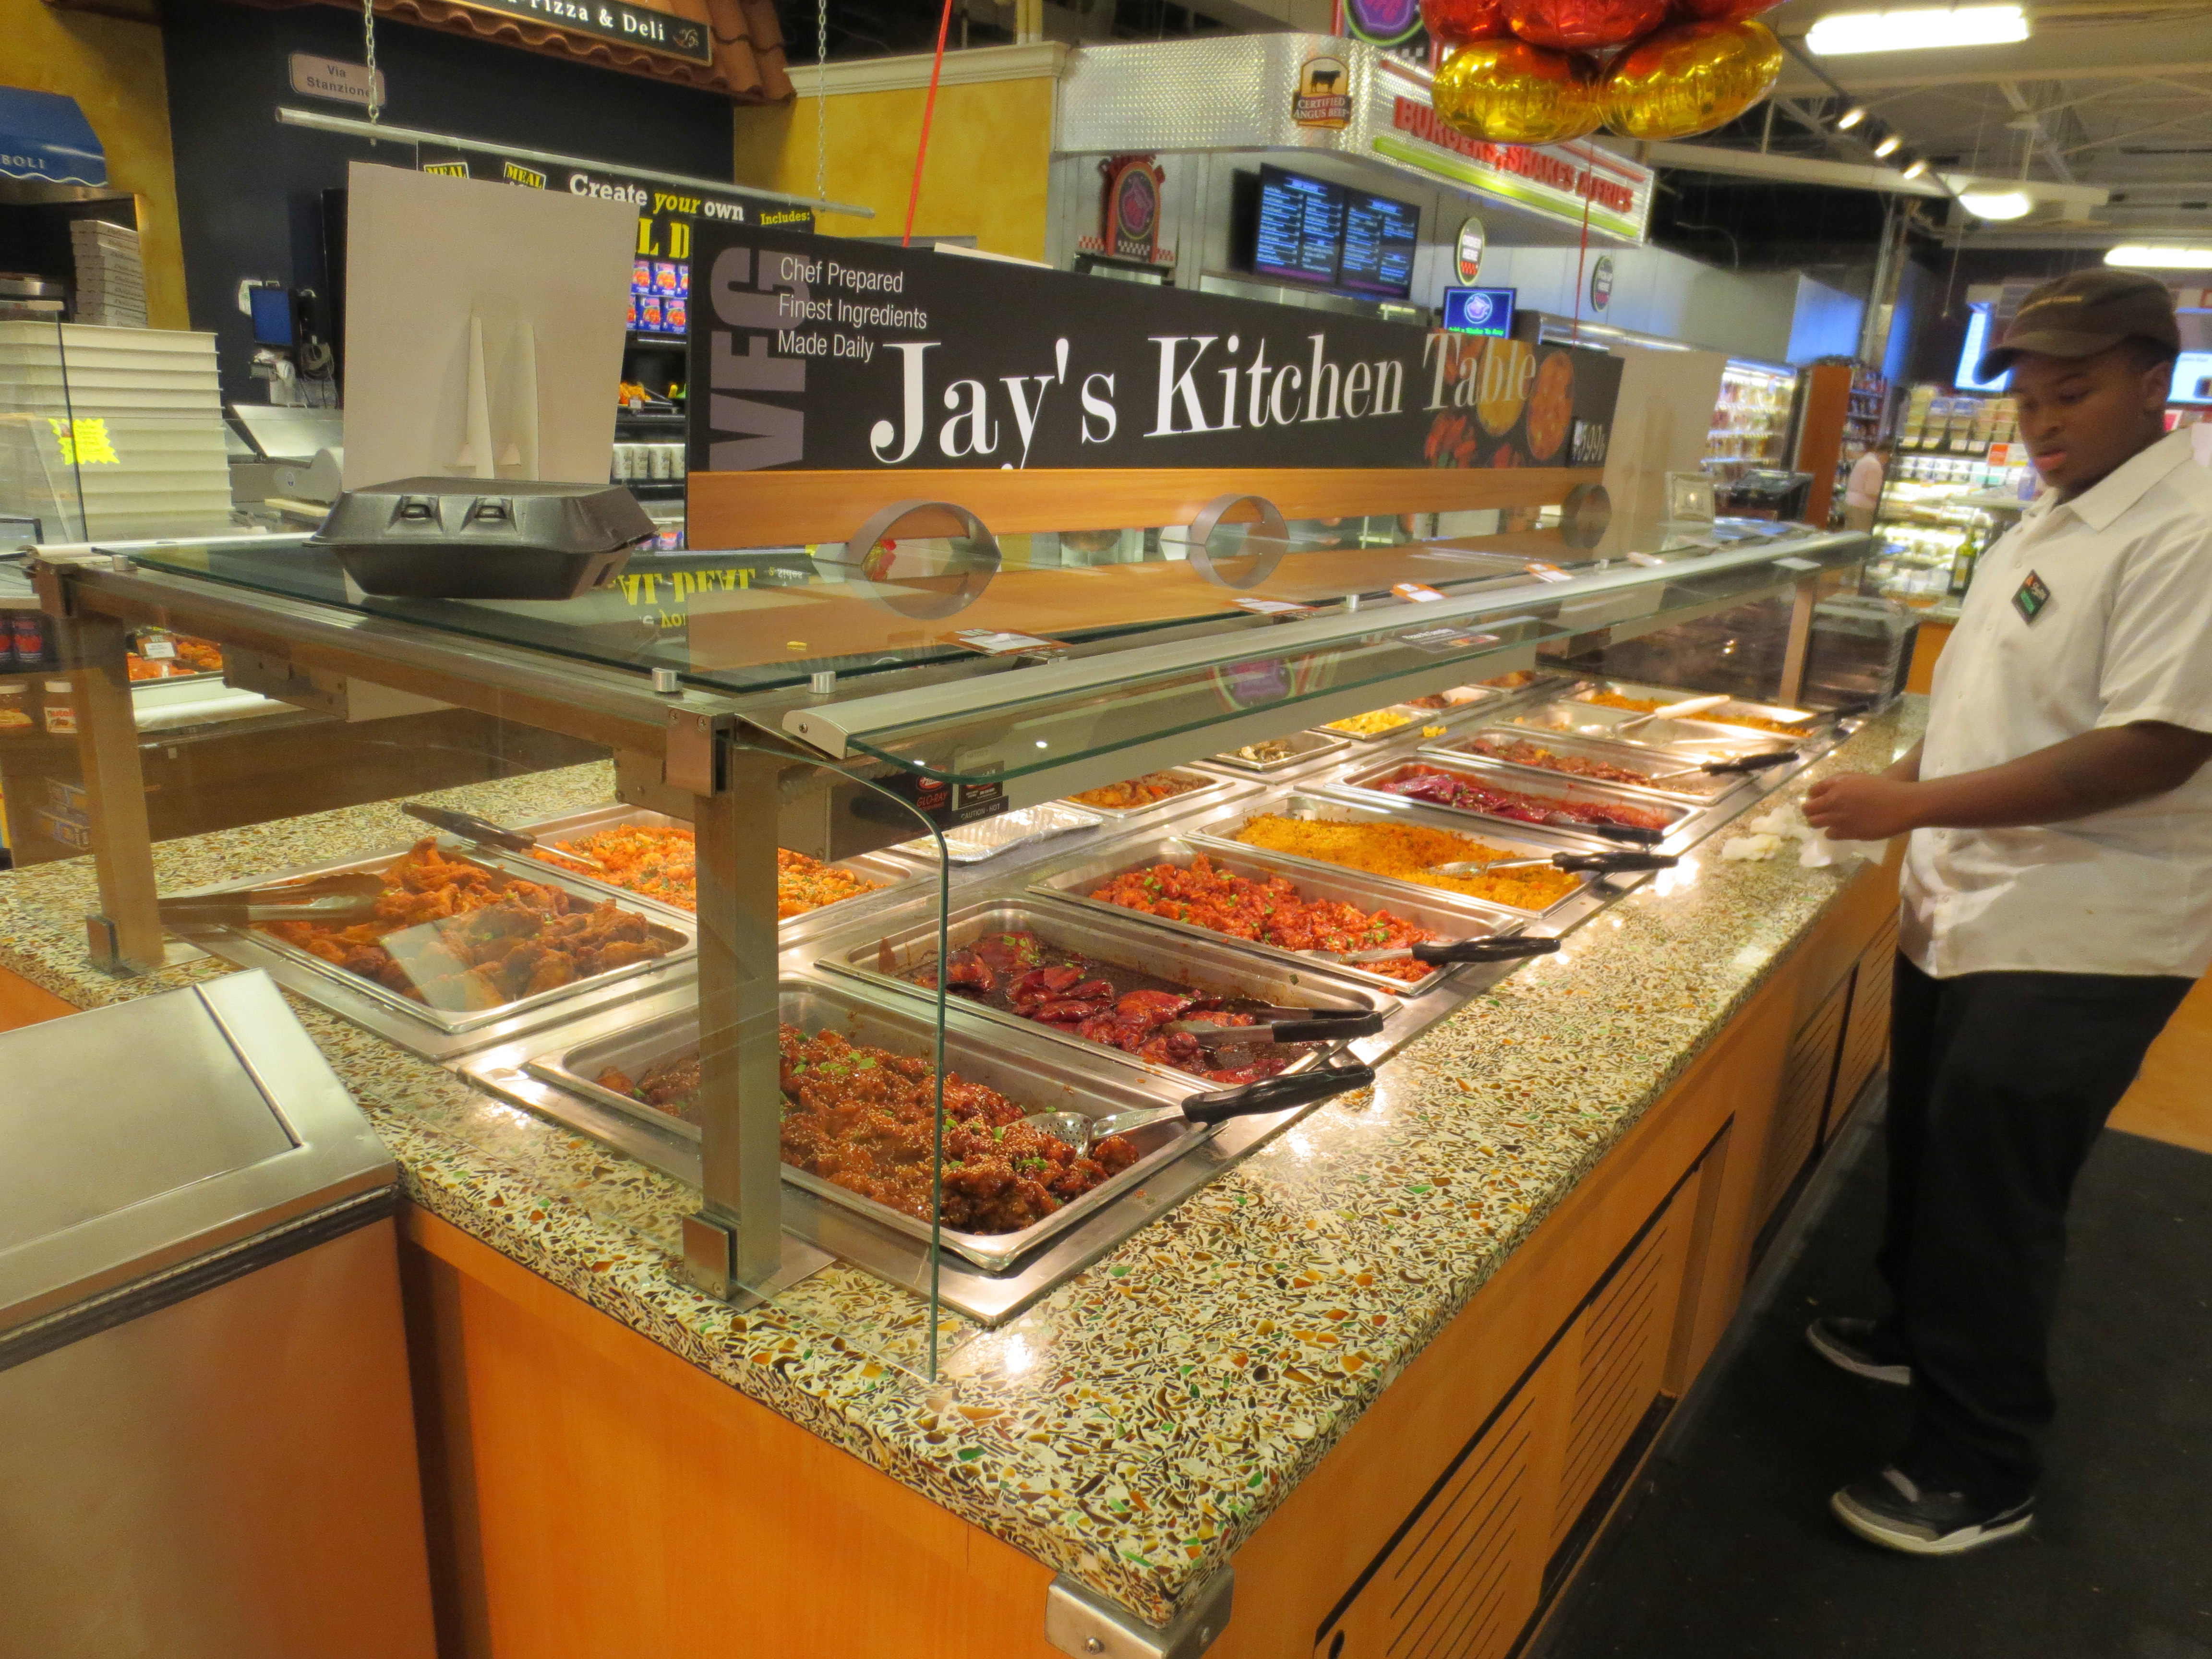 Latest state-of-the-art ShopRite opens in Monmouth County with special emphasis on fresh, prepared foods. Fourth and fifth generation grocers, the Saker family .